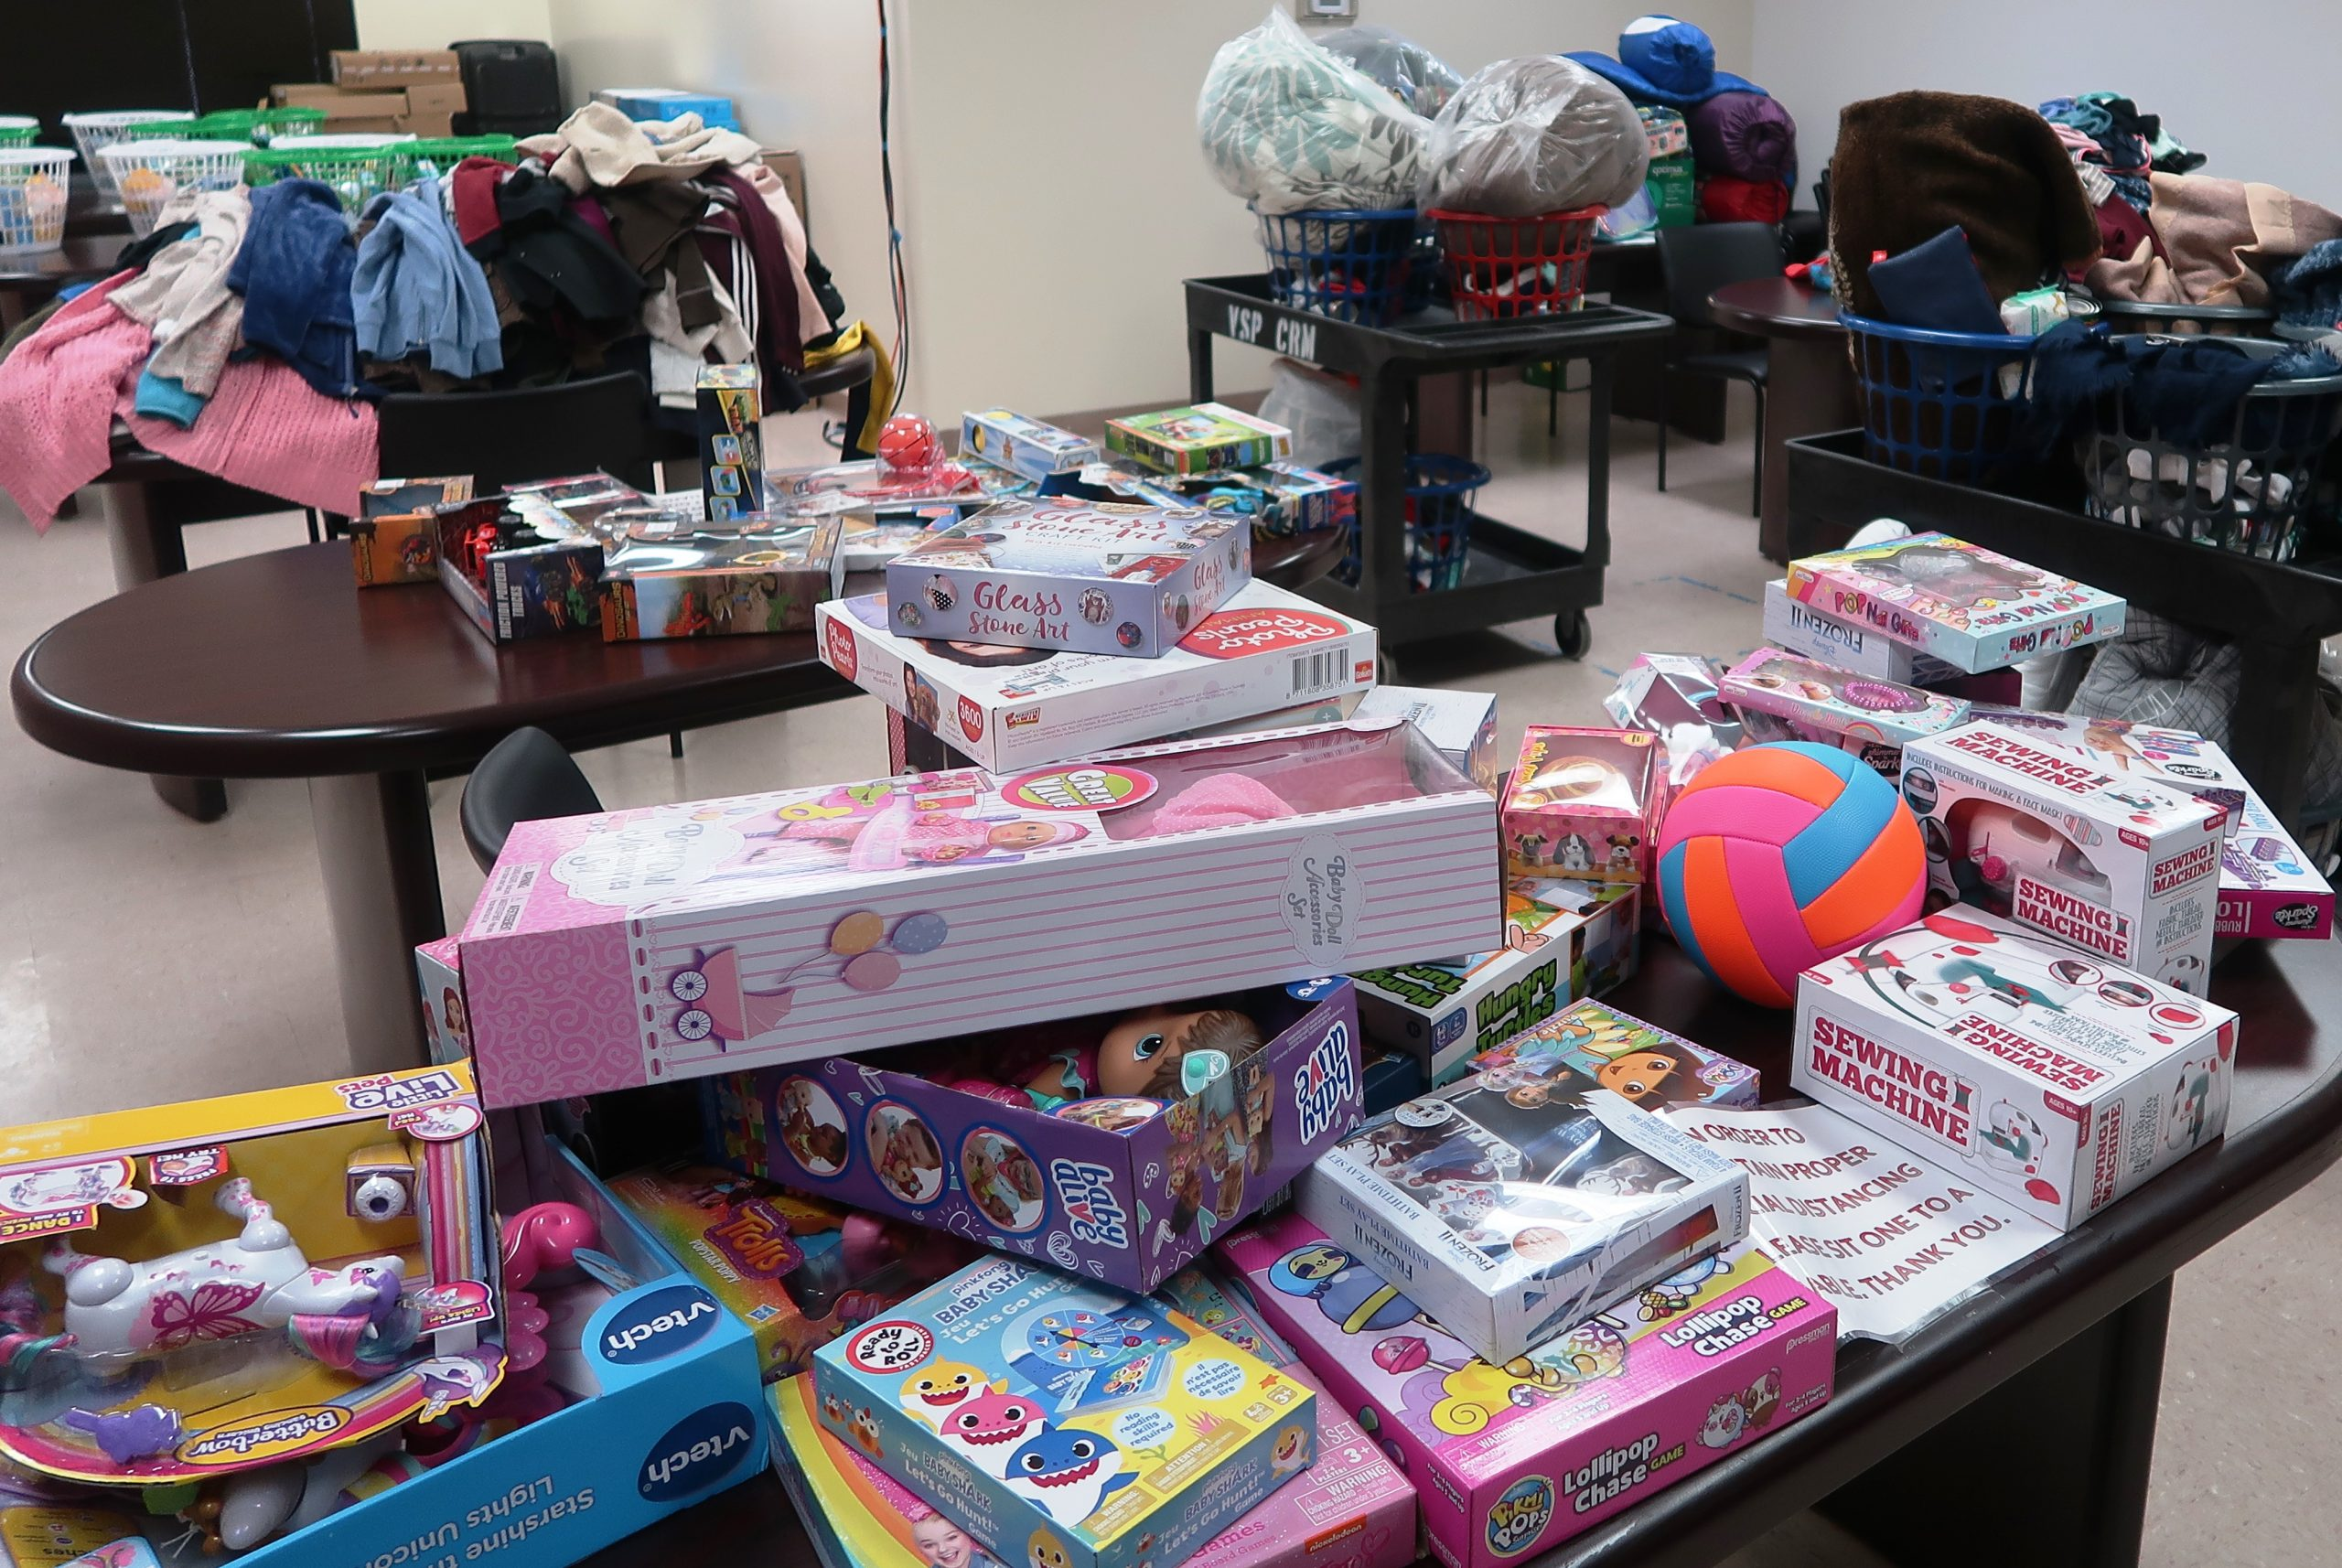 VSP staff collected toys and clothing to be donated to needy families.